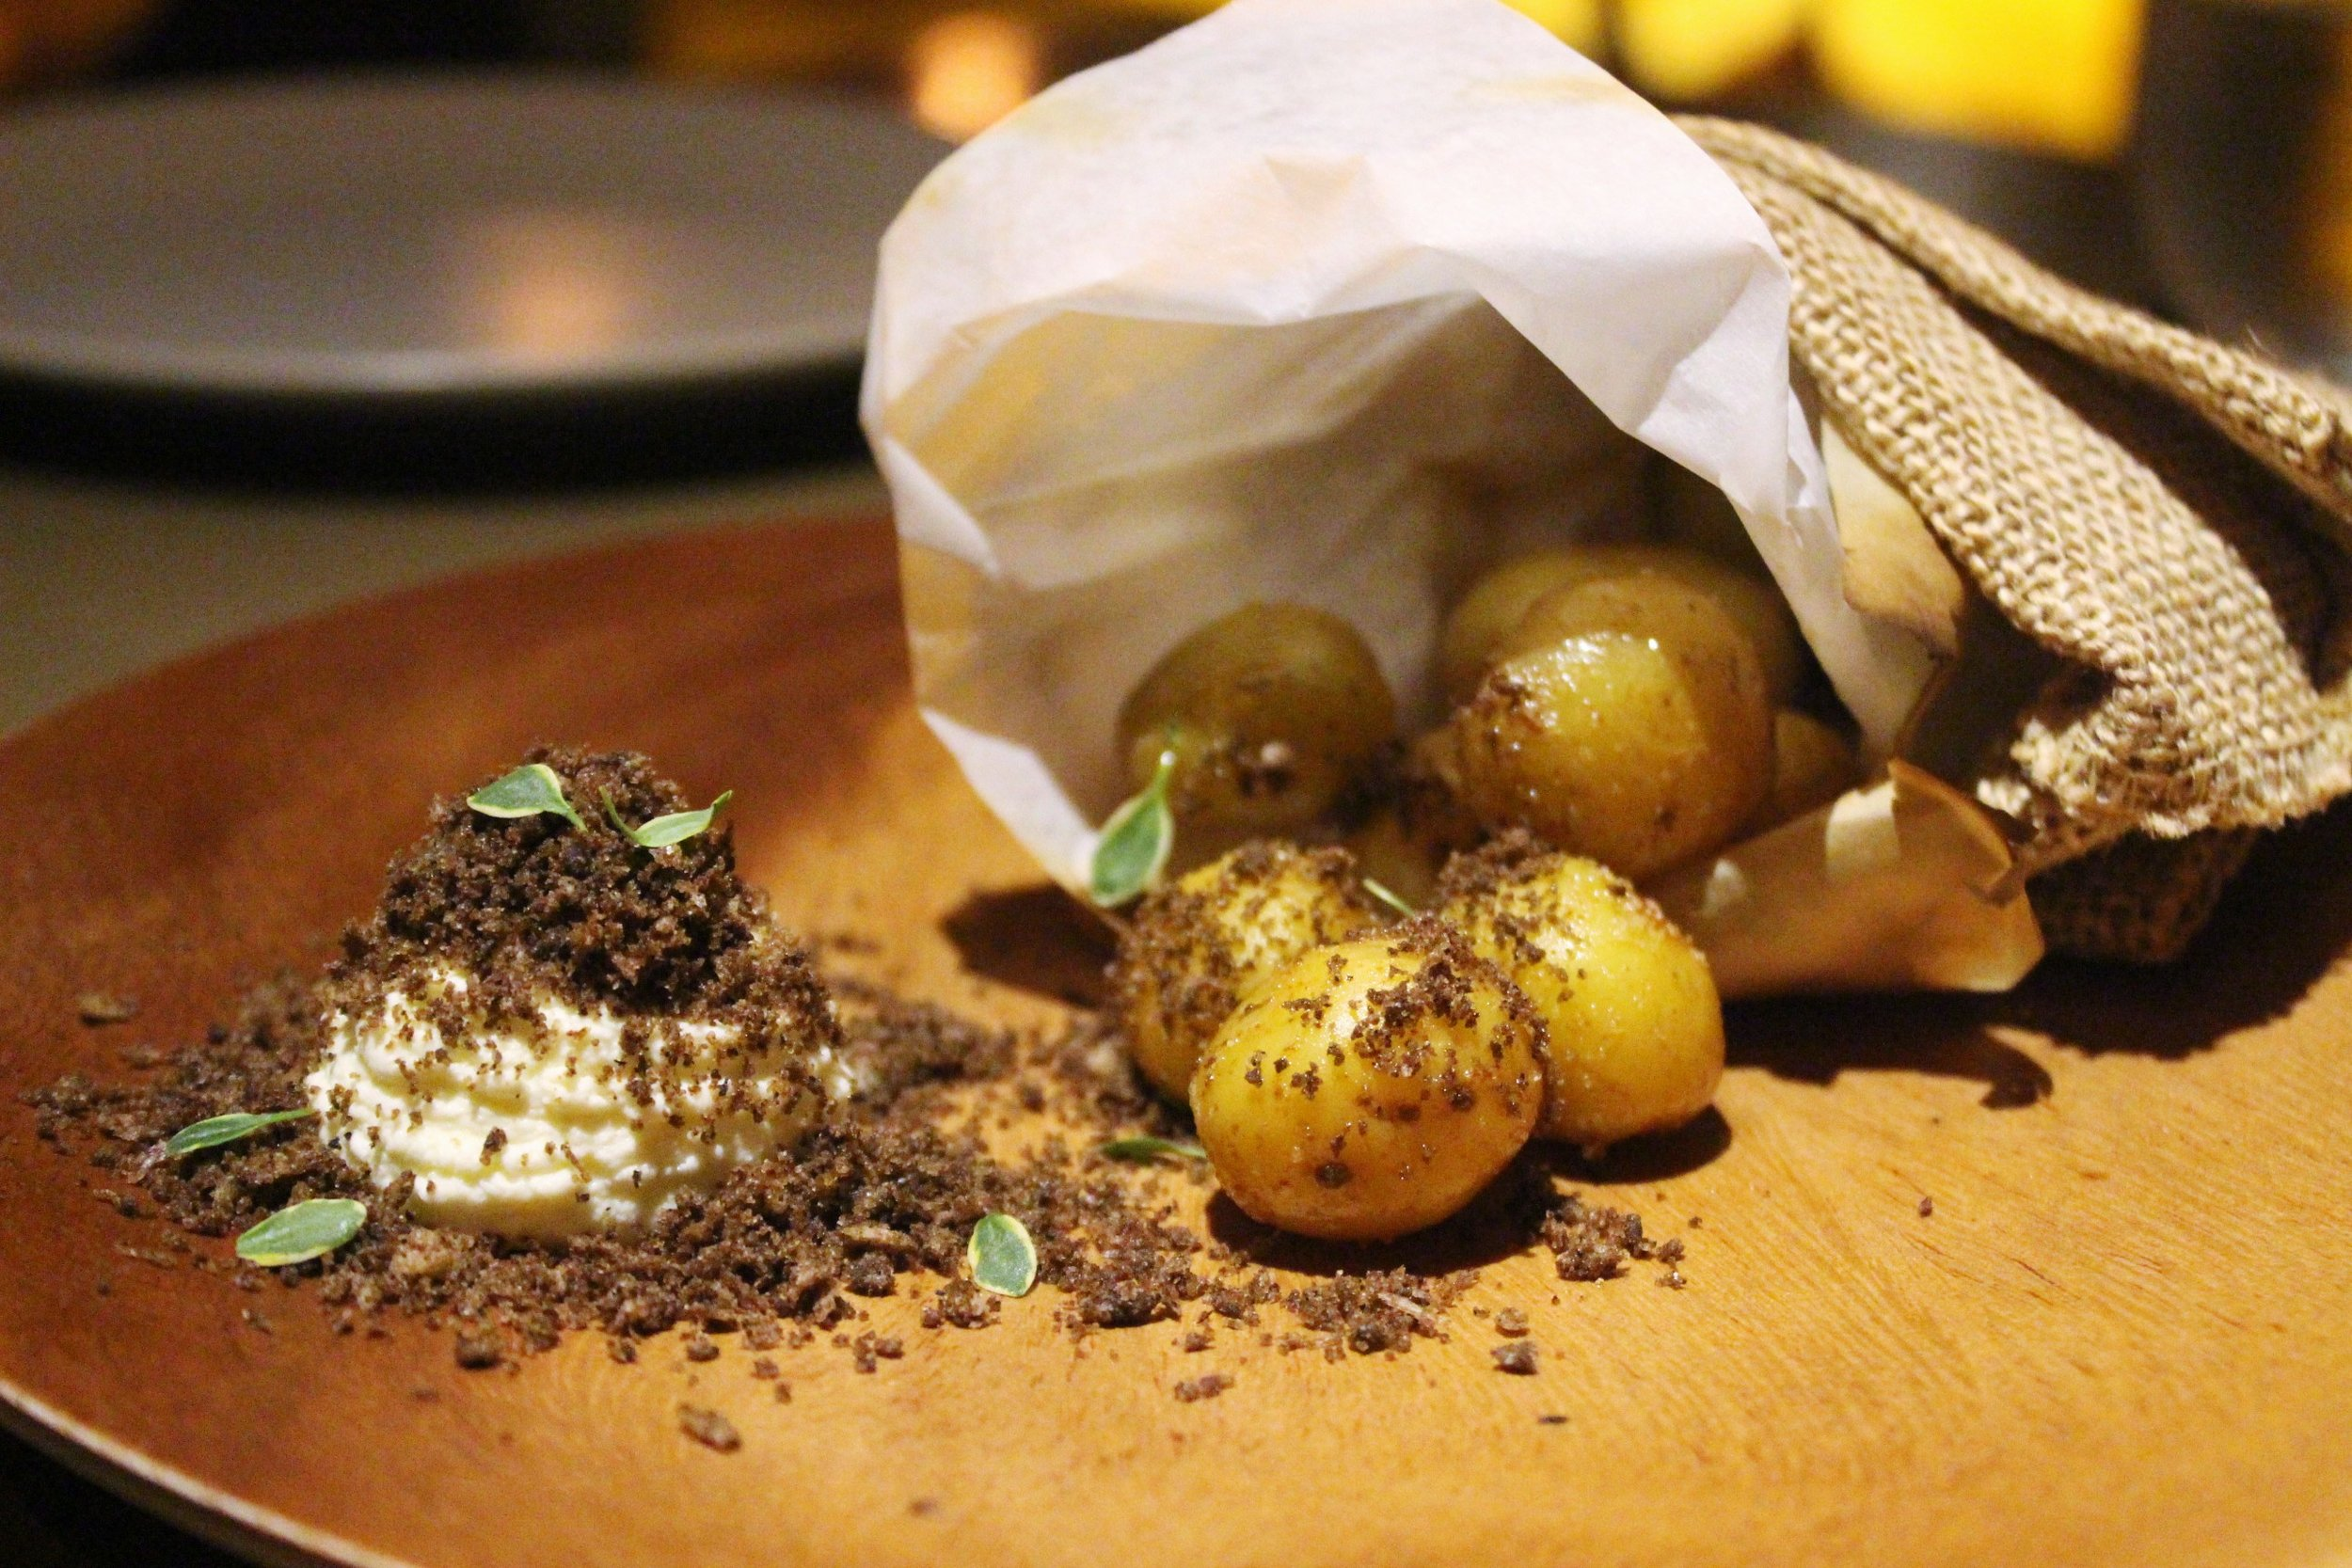 Baby Potato with Mushroom Crumble and Cultured Cream